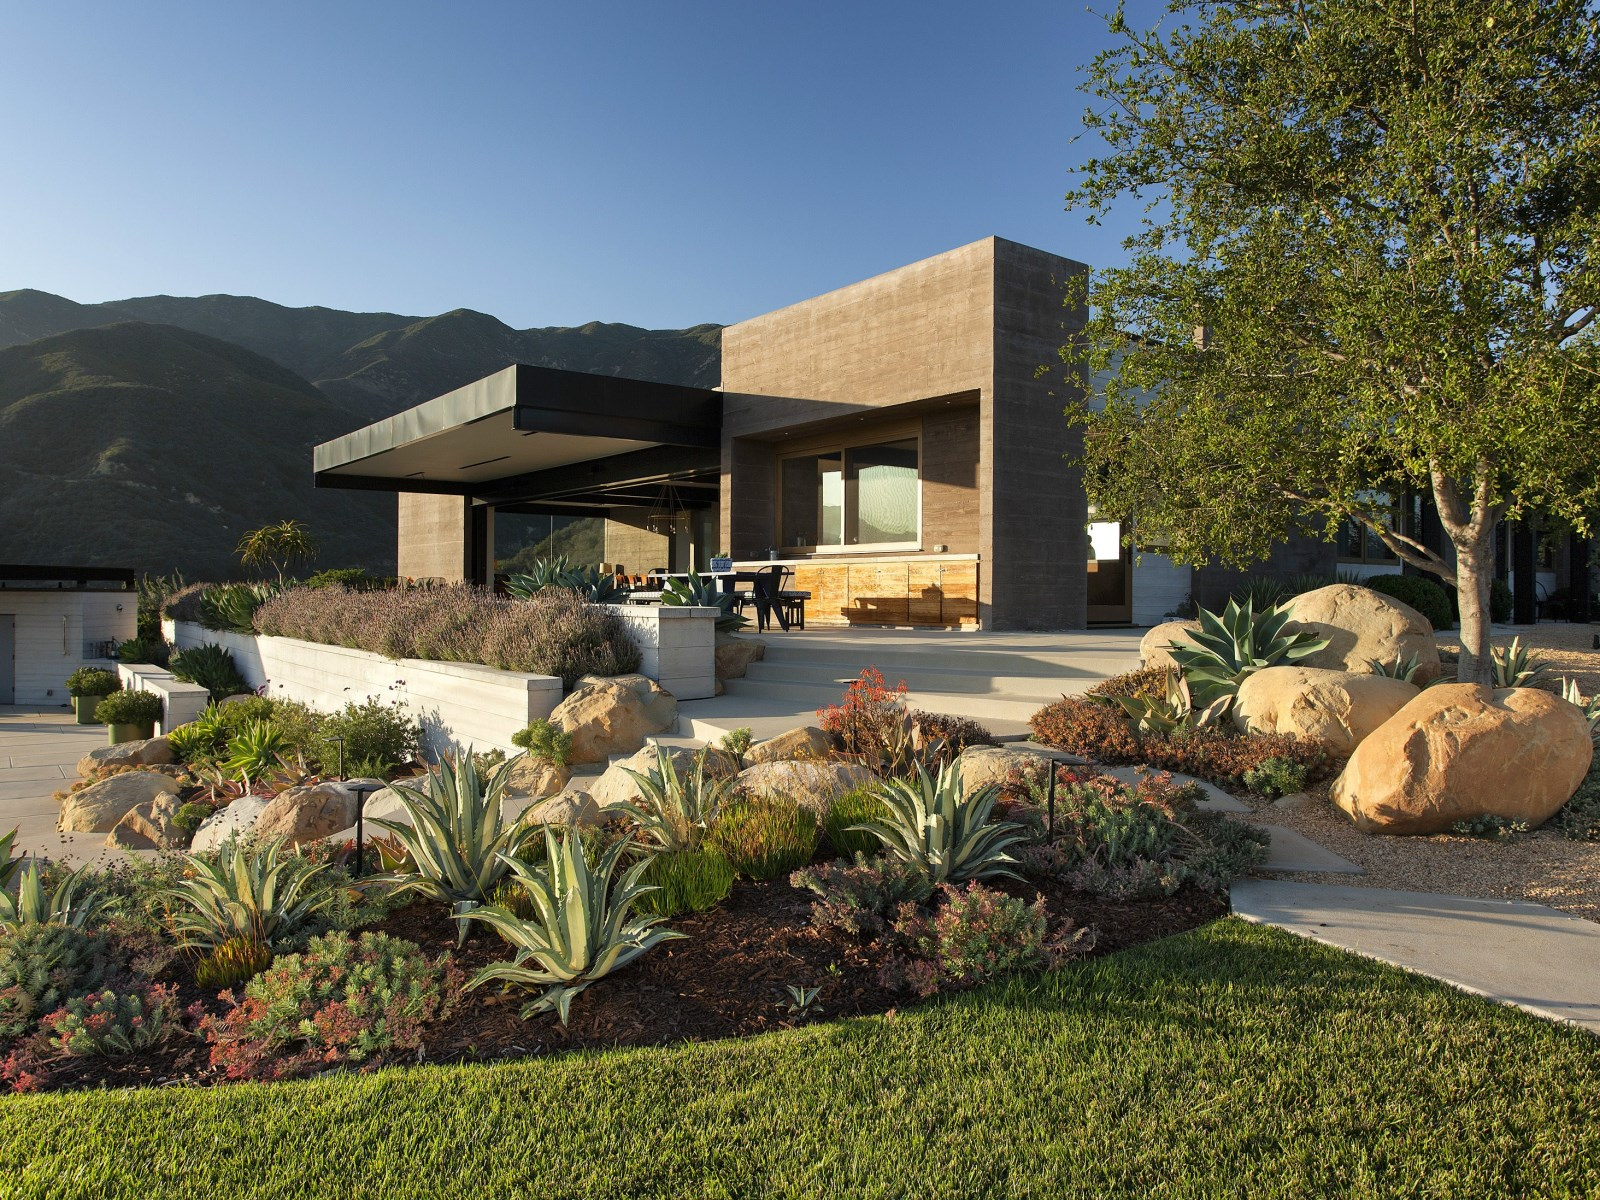 California Modern Architecture A Modern Architectural Masterpiece In California